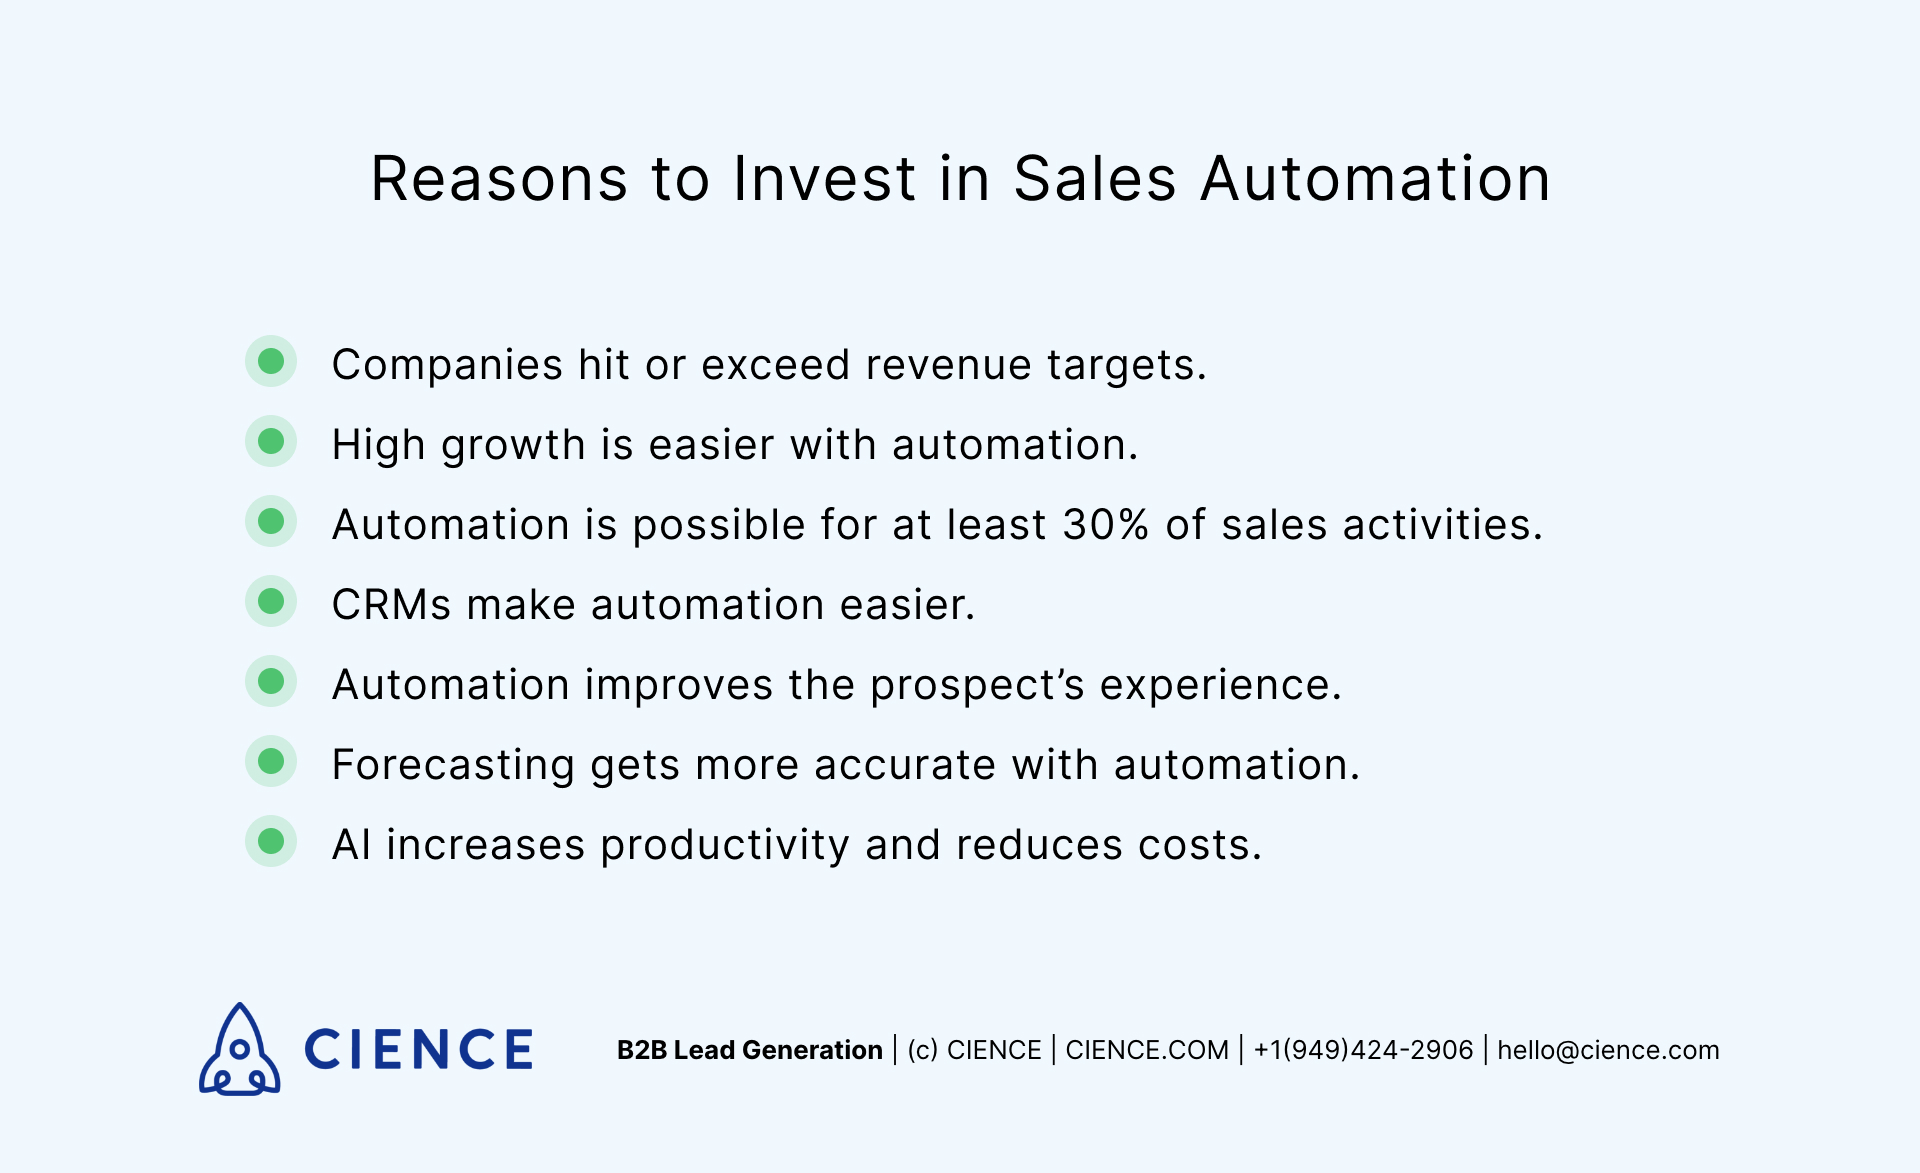 Sales automation - reasons to invest in it